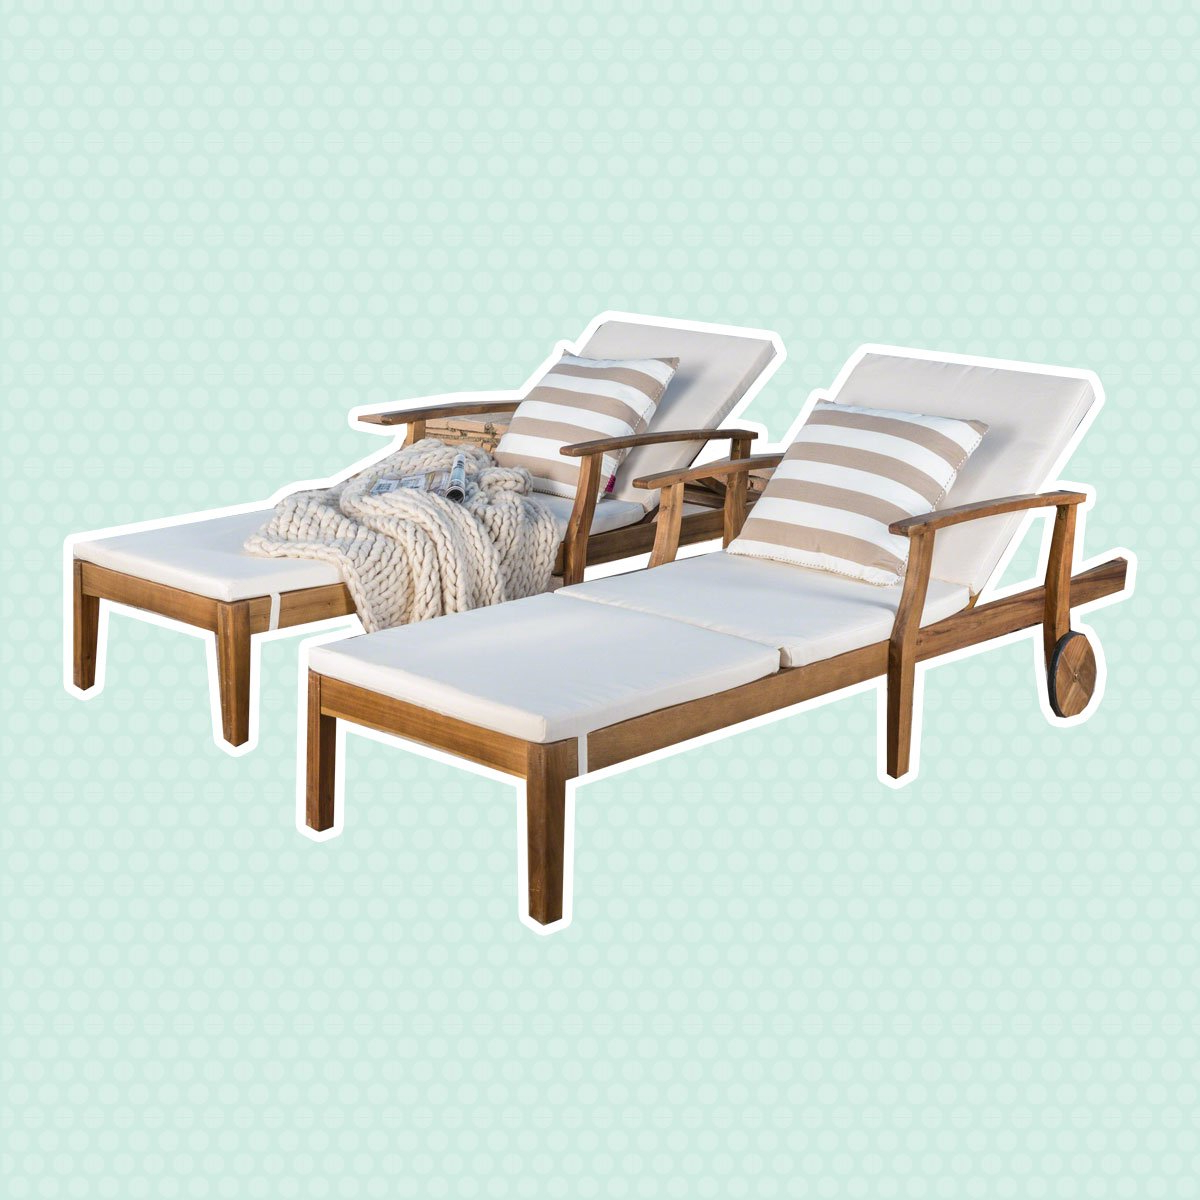 Taste Of Home For Perla Outdoor Acacia Wood Chaise Lounge With Cushion (View 23 of 25)